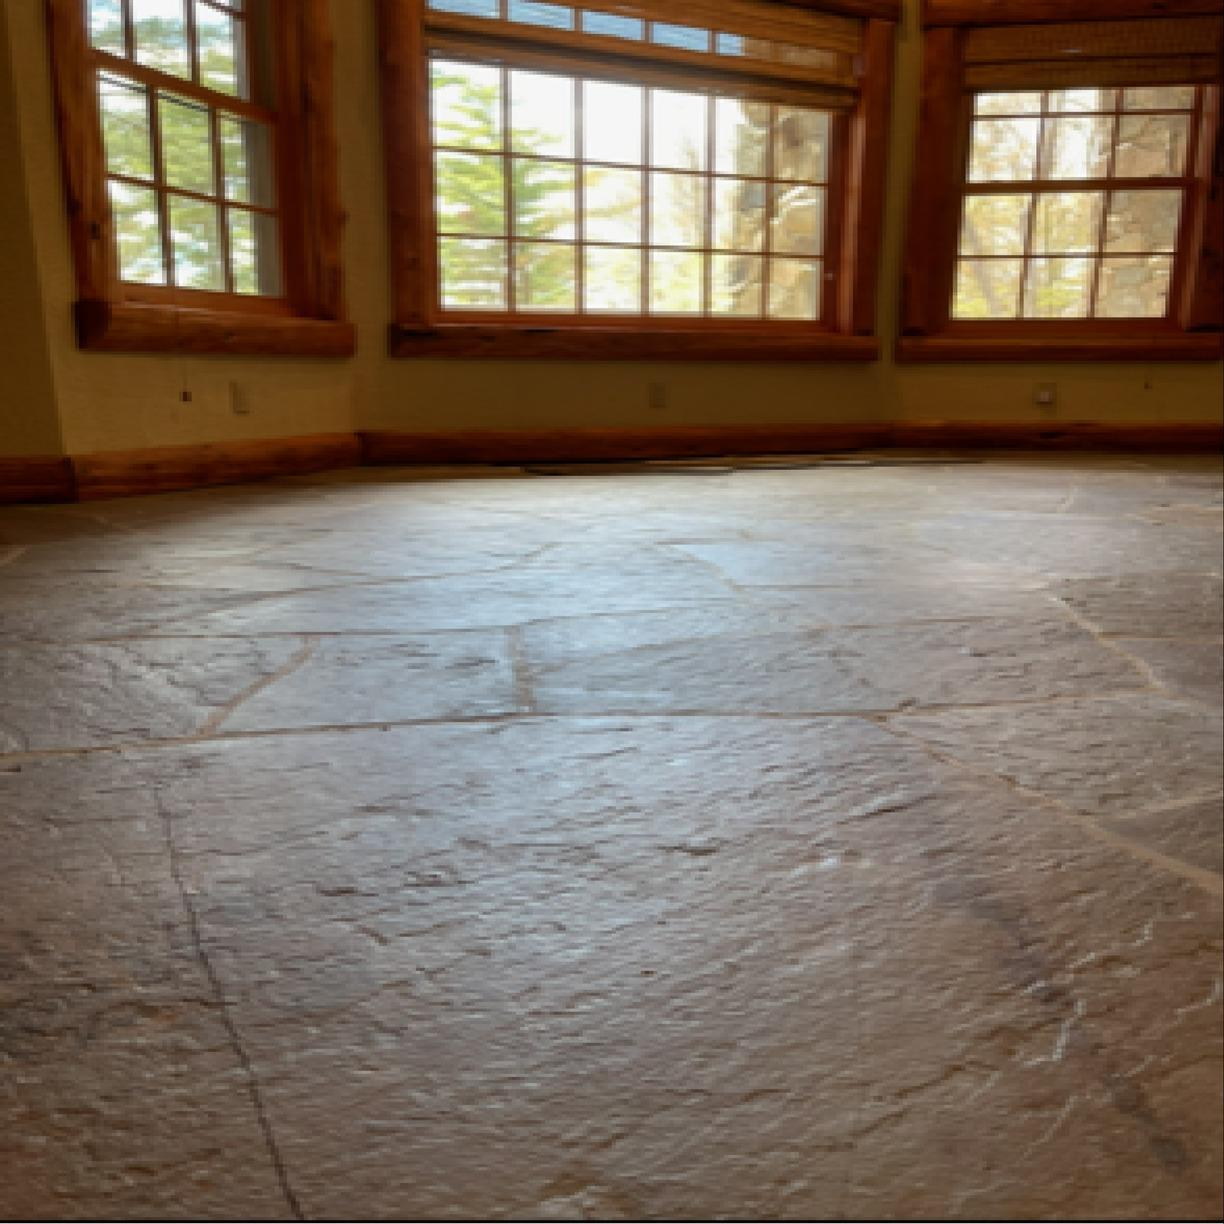 Lifting and Leveling Sunken Floors Due To Poor Compaction With PolyLevel - White Lake, NY - After Photo